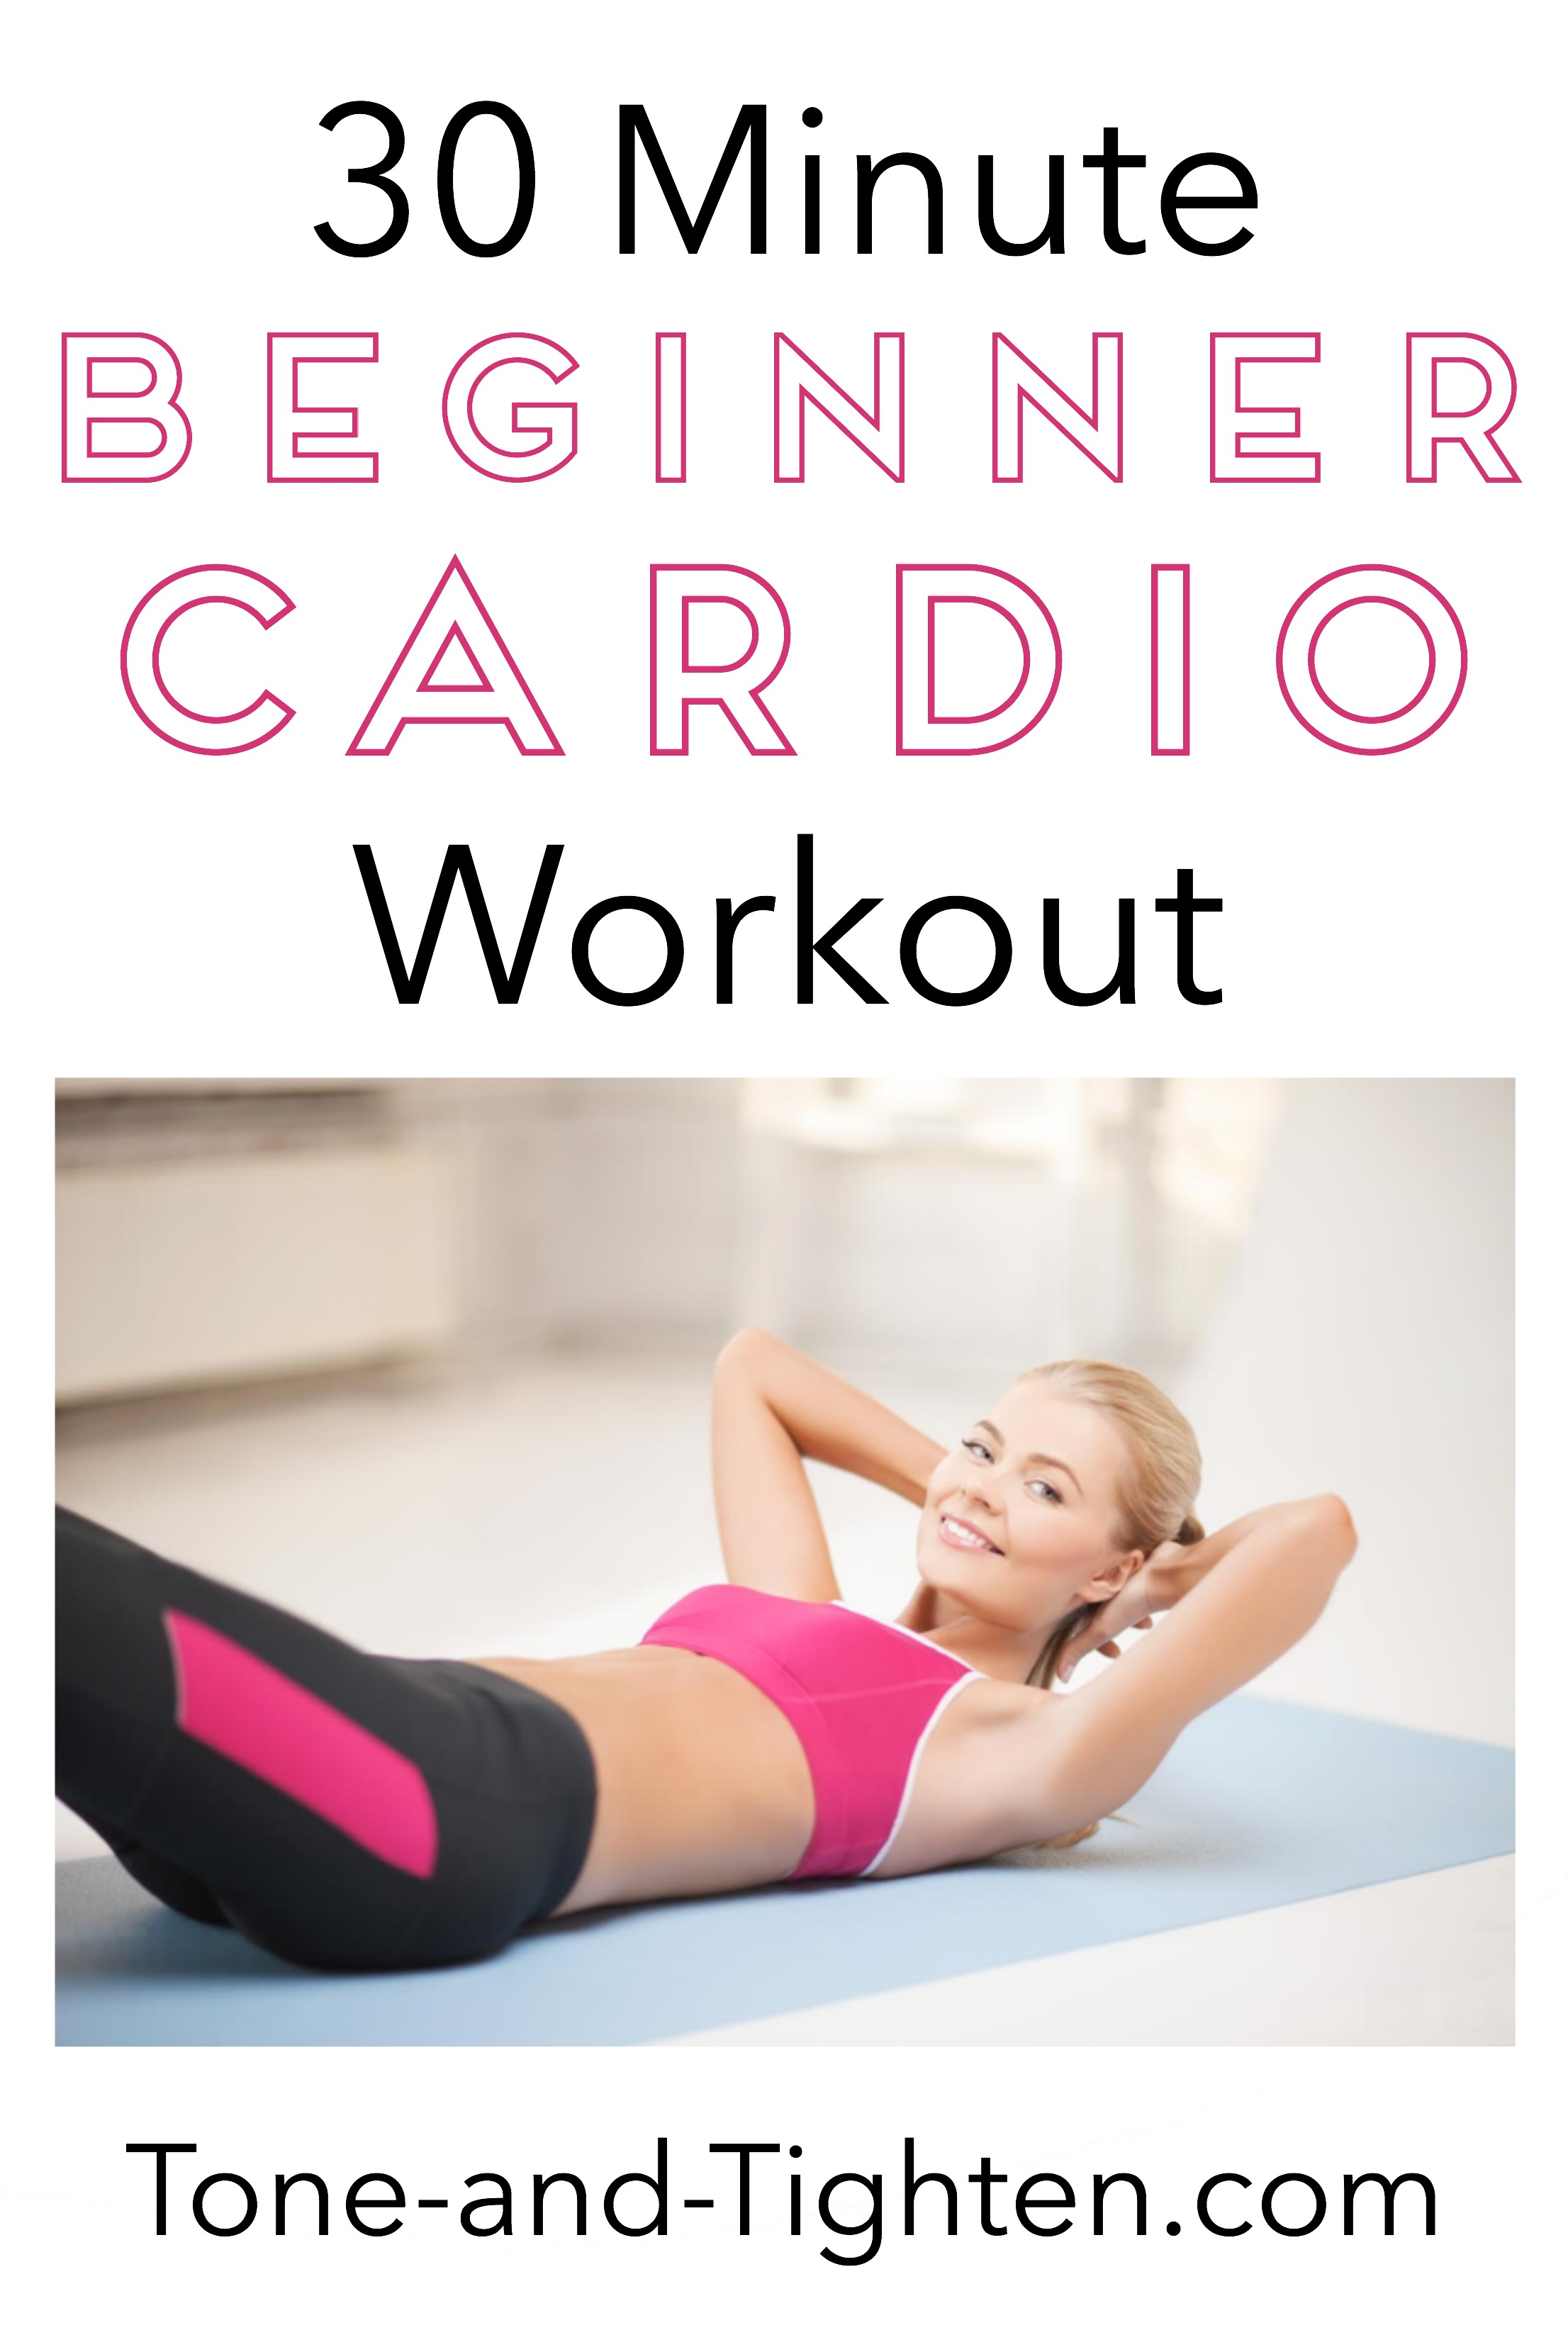 30 Minute Cardio Workout On Tone And Tighten